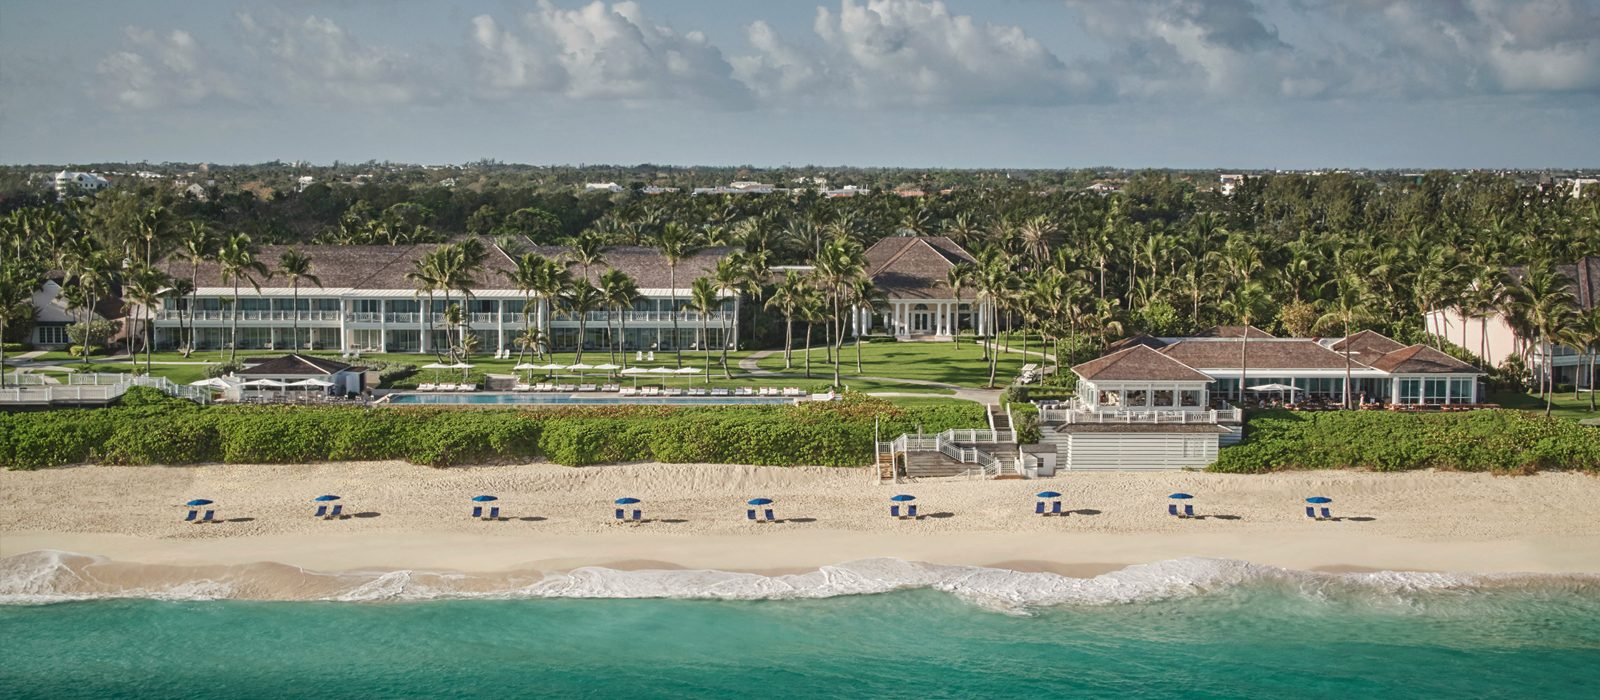 Luxury Bahamas Holiday Packages The Ocean Club, A Four Seasons Resort Header1